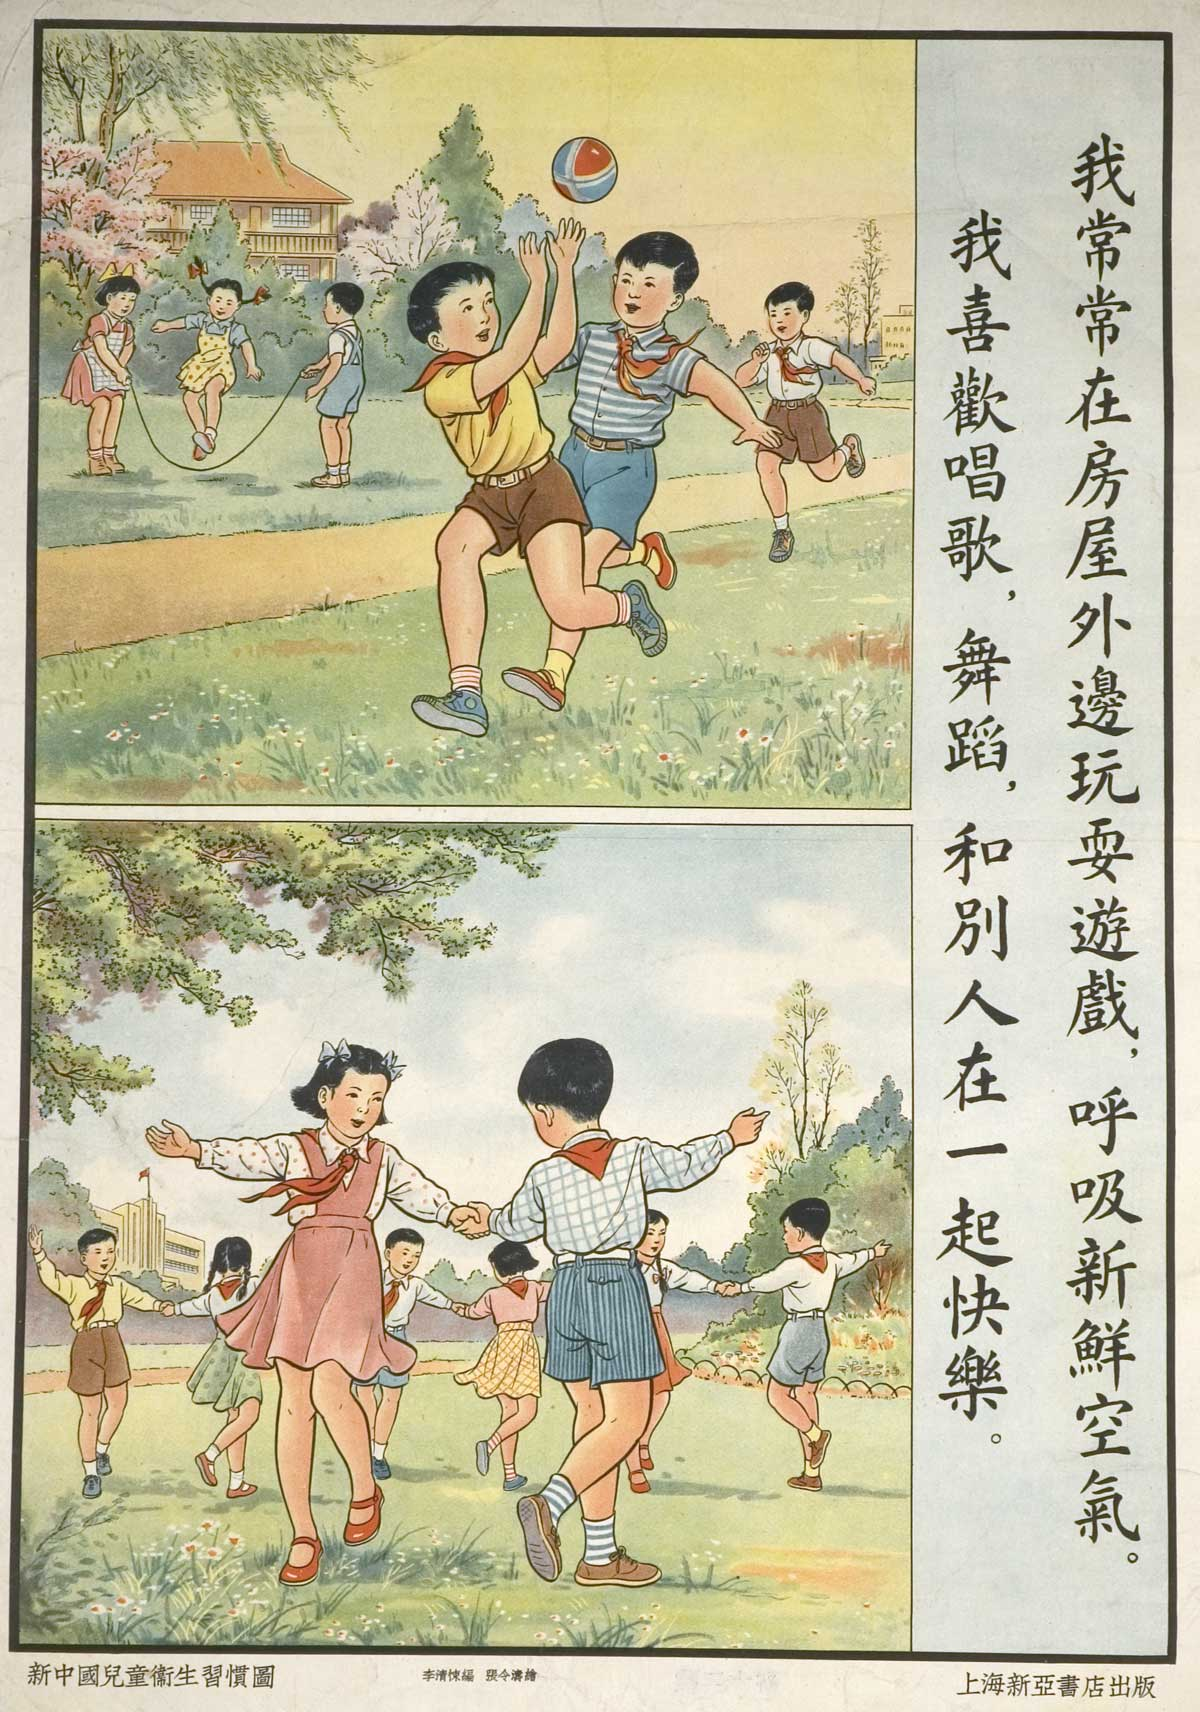 chinese public health posters - education